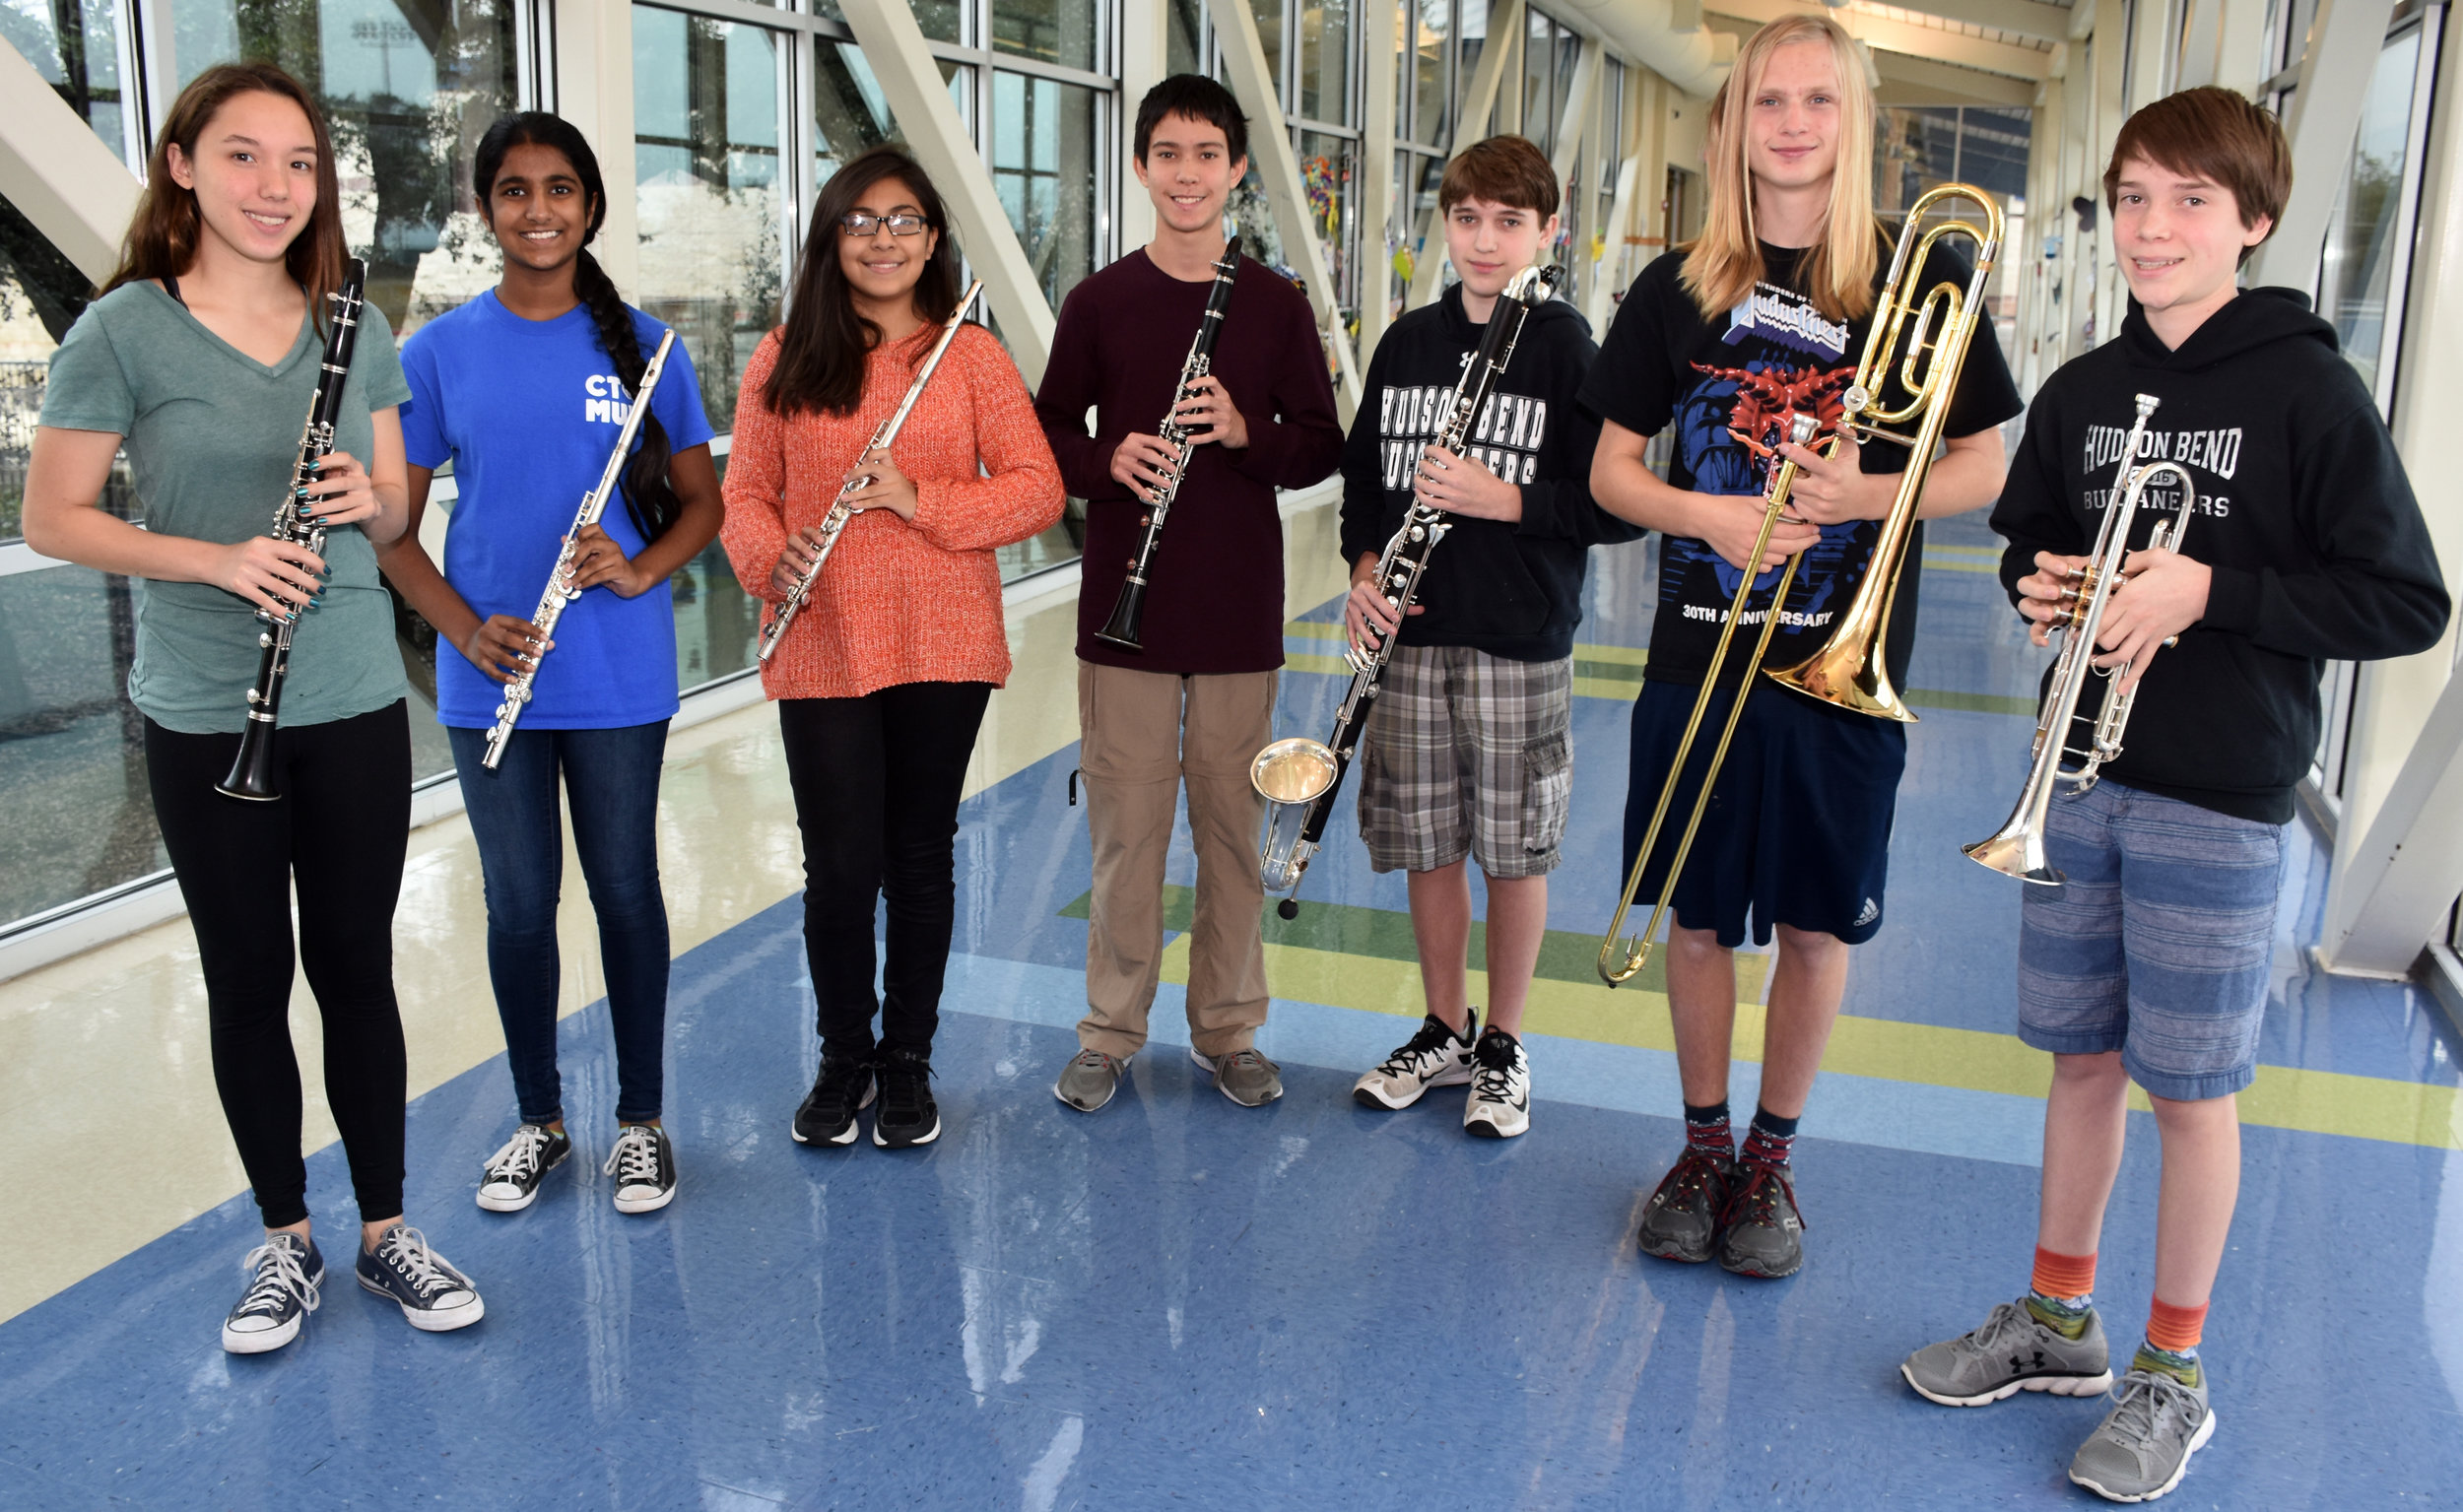 Hudson Bend Middle School TMEA All-Region 32 band members:  Lindsey Bowen ,  Swetha Ayinala ,  Daniela Sanchez ,  Stephen Cox ,  Cameron McHenry ,  Jake Frankhouse  r , and  Connor Burns ; n  ot pictured:  Elizabeth Suh  and  Nihanth Attaluri